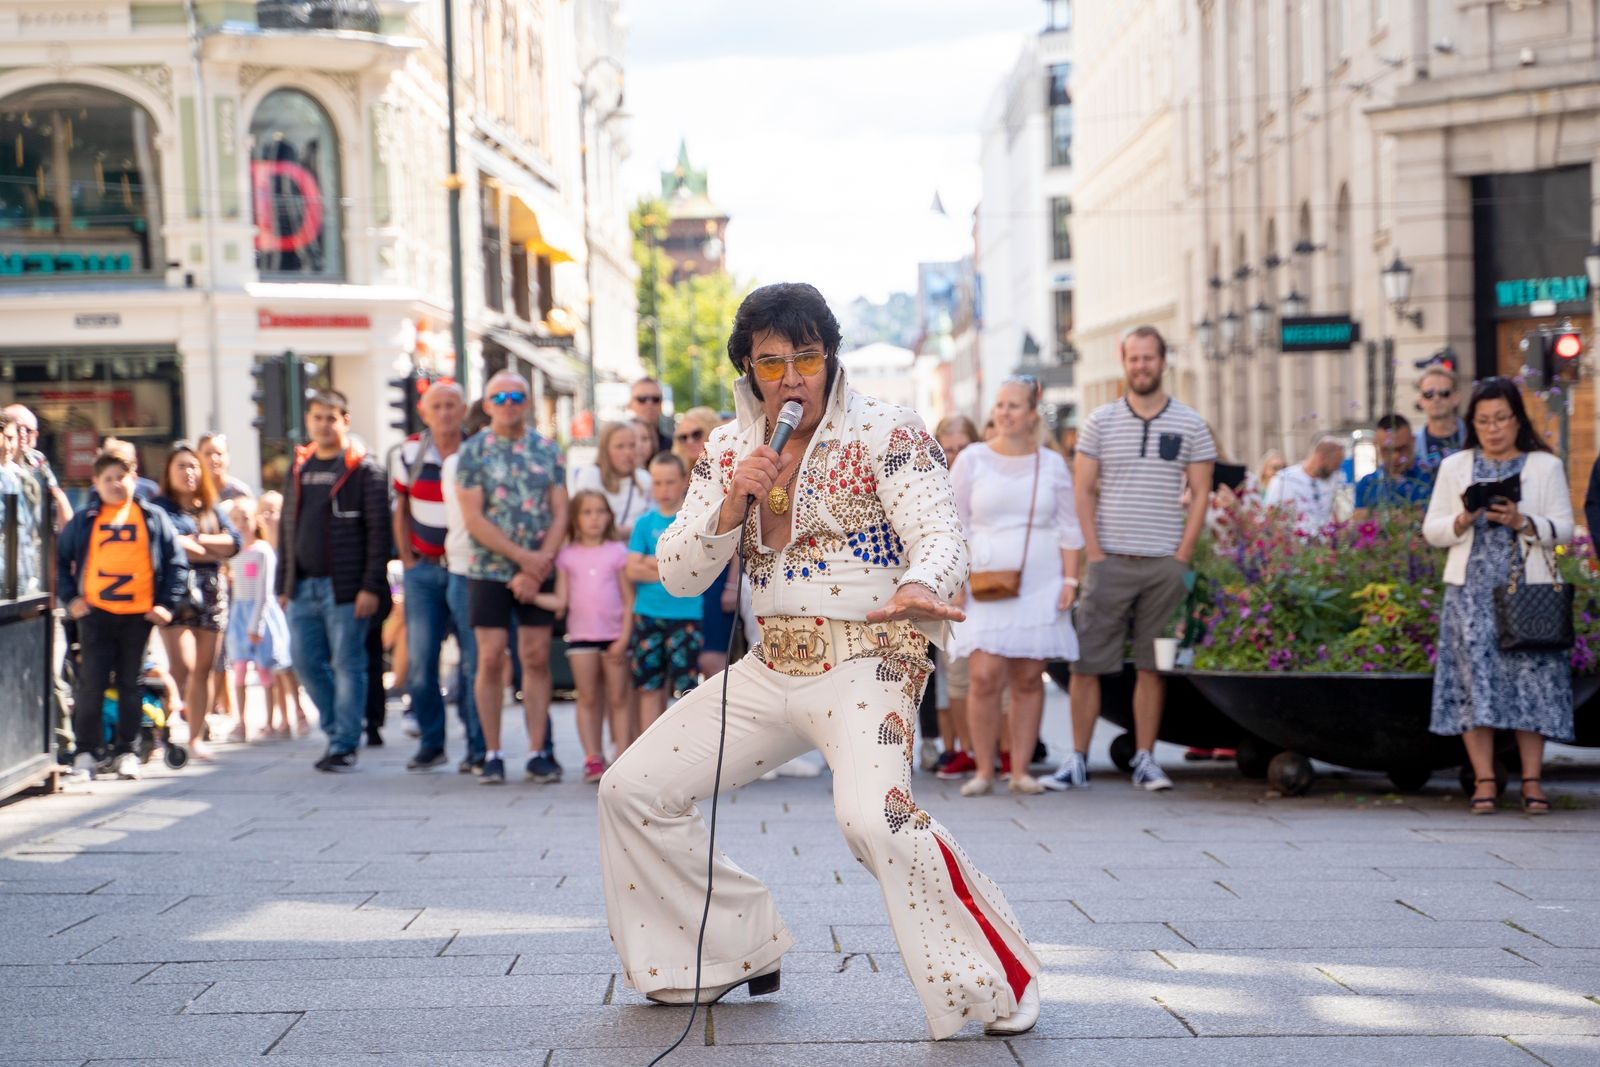 NORWAY-ENTERTAINMENT-MUSIC-ELVIS-RECORD-ATTEMPT